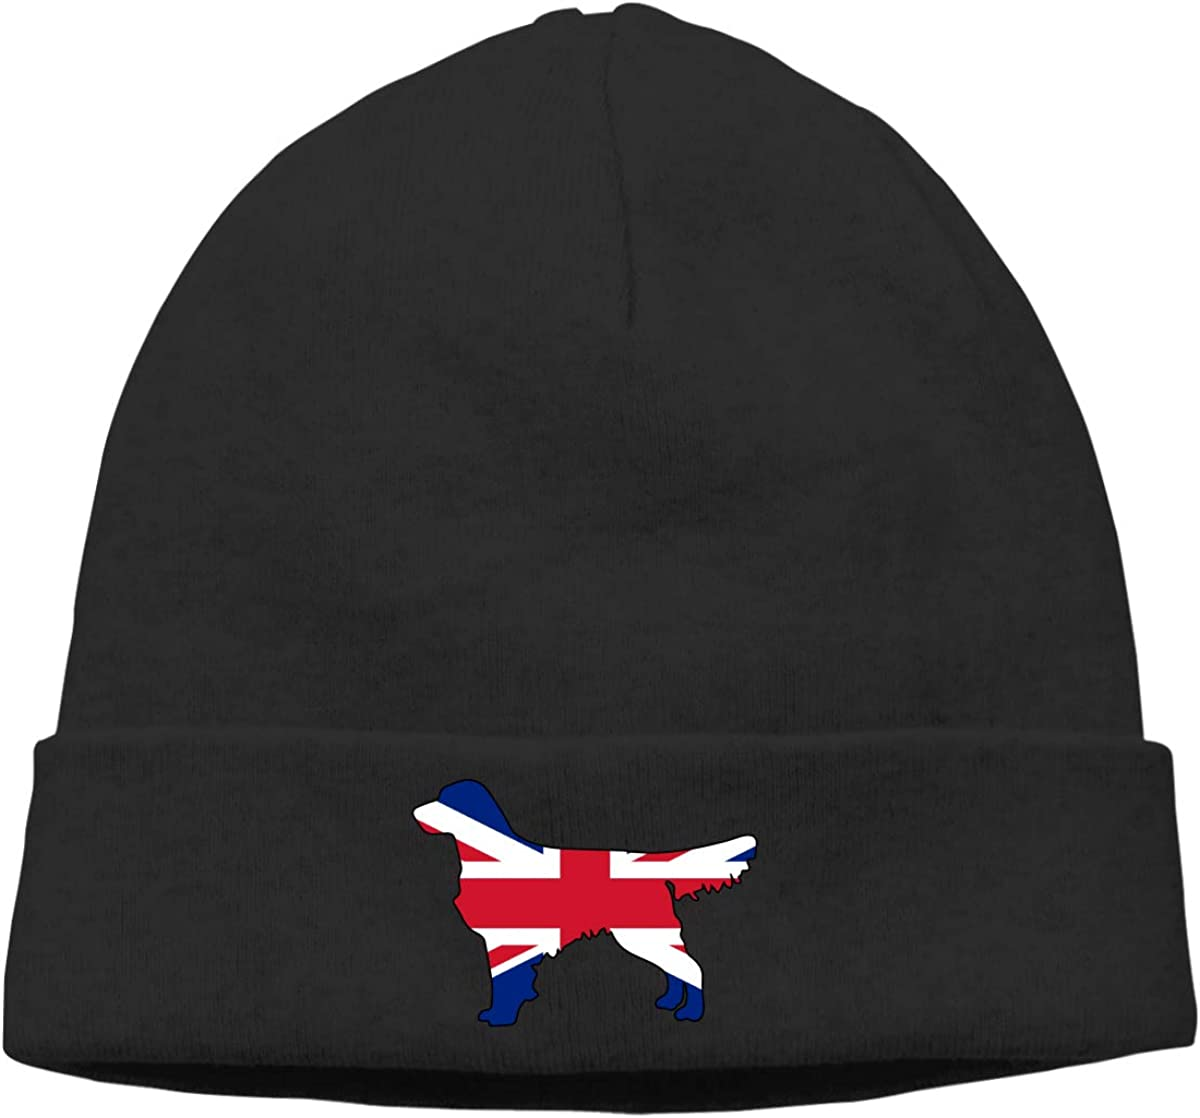 British Flag Golden Retriever Dogs Men /& Women Solid Color Beanie Hat Thin Stretchy /& Soft Winter Cap